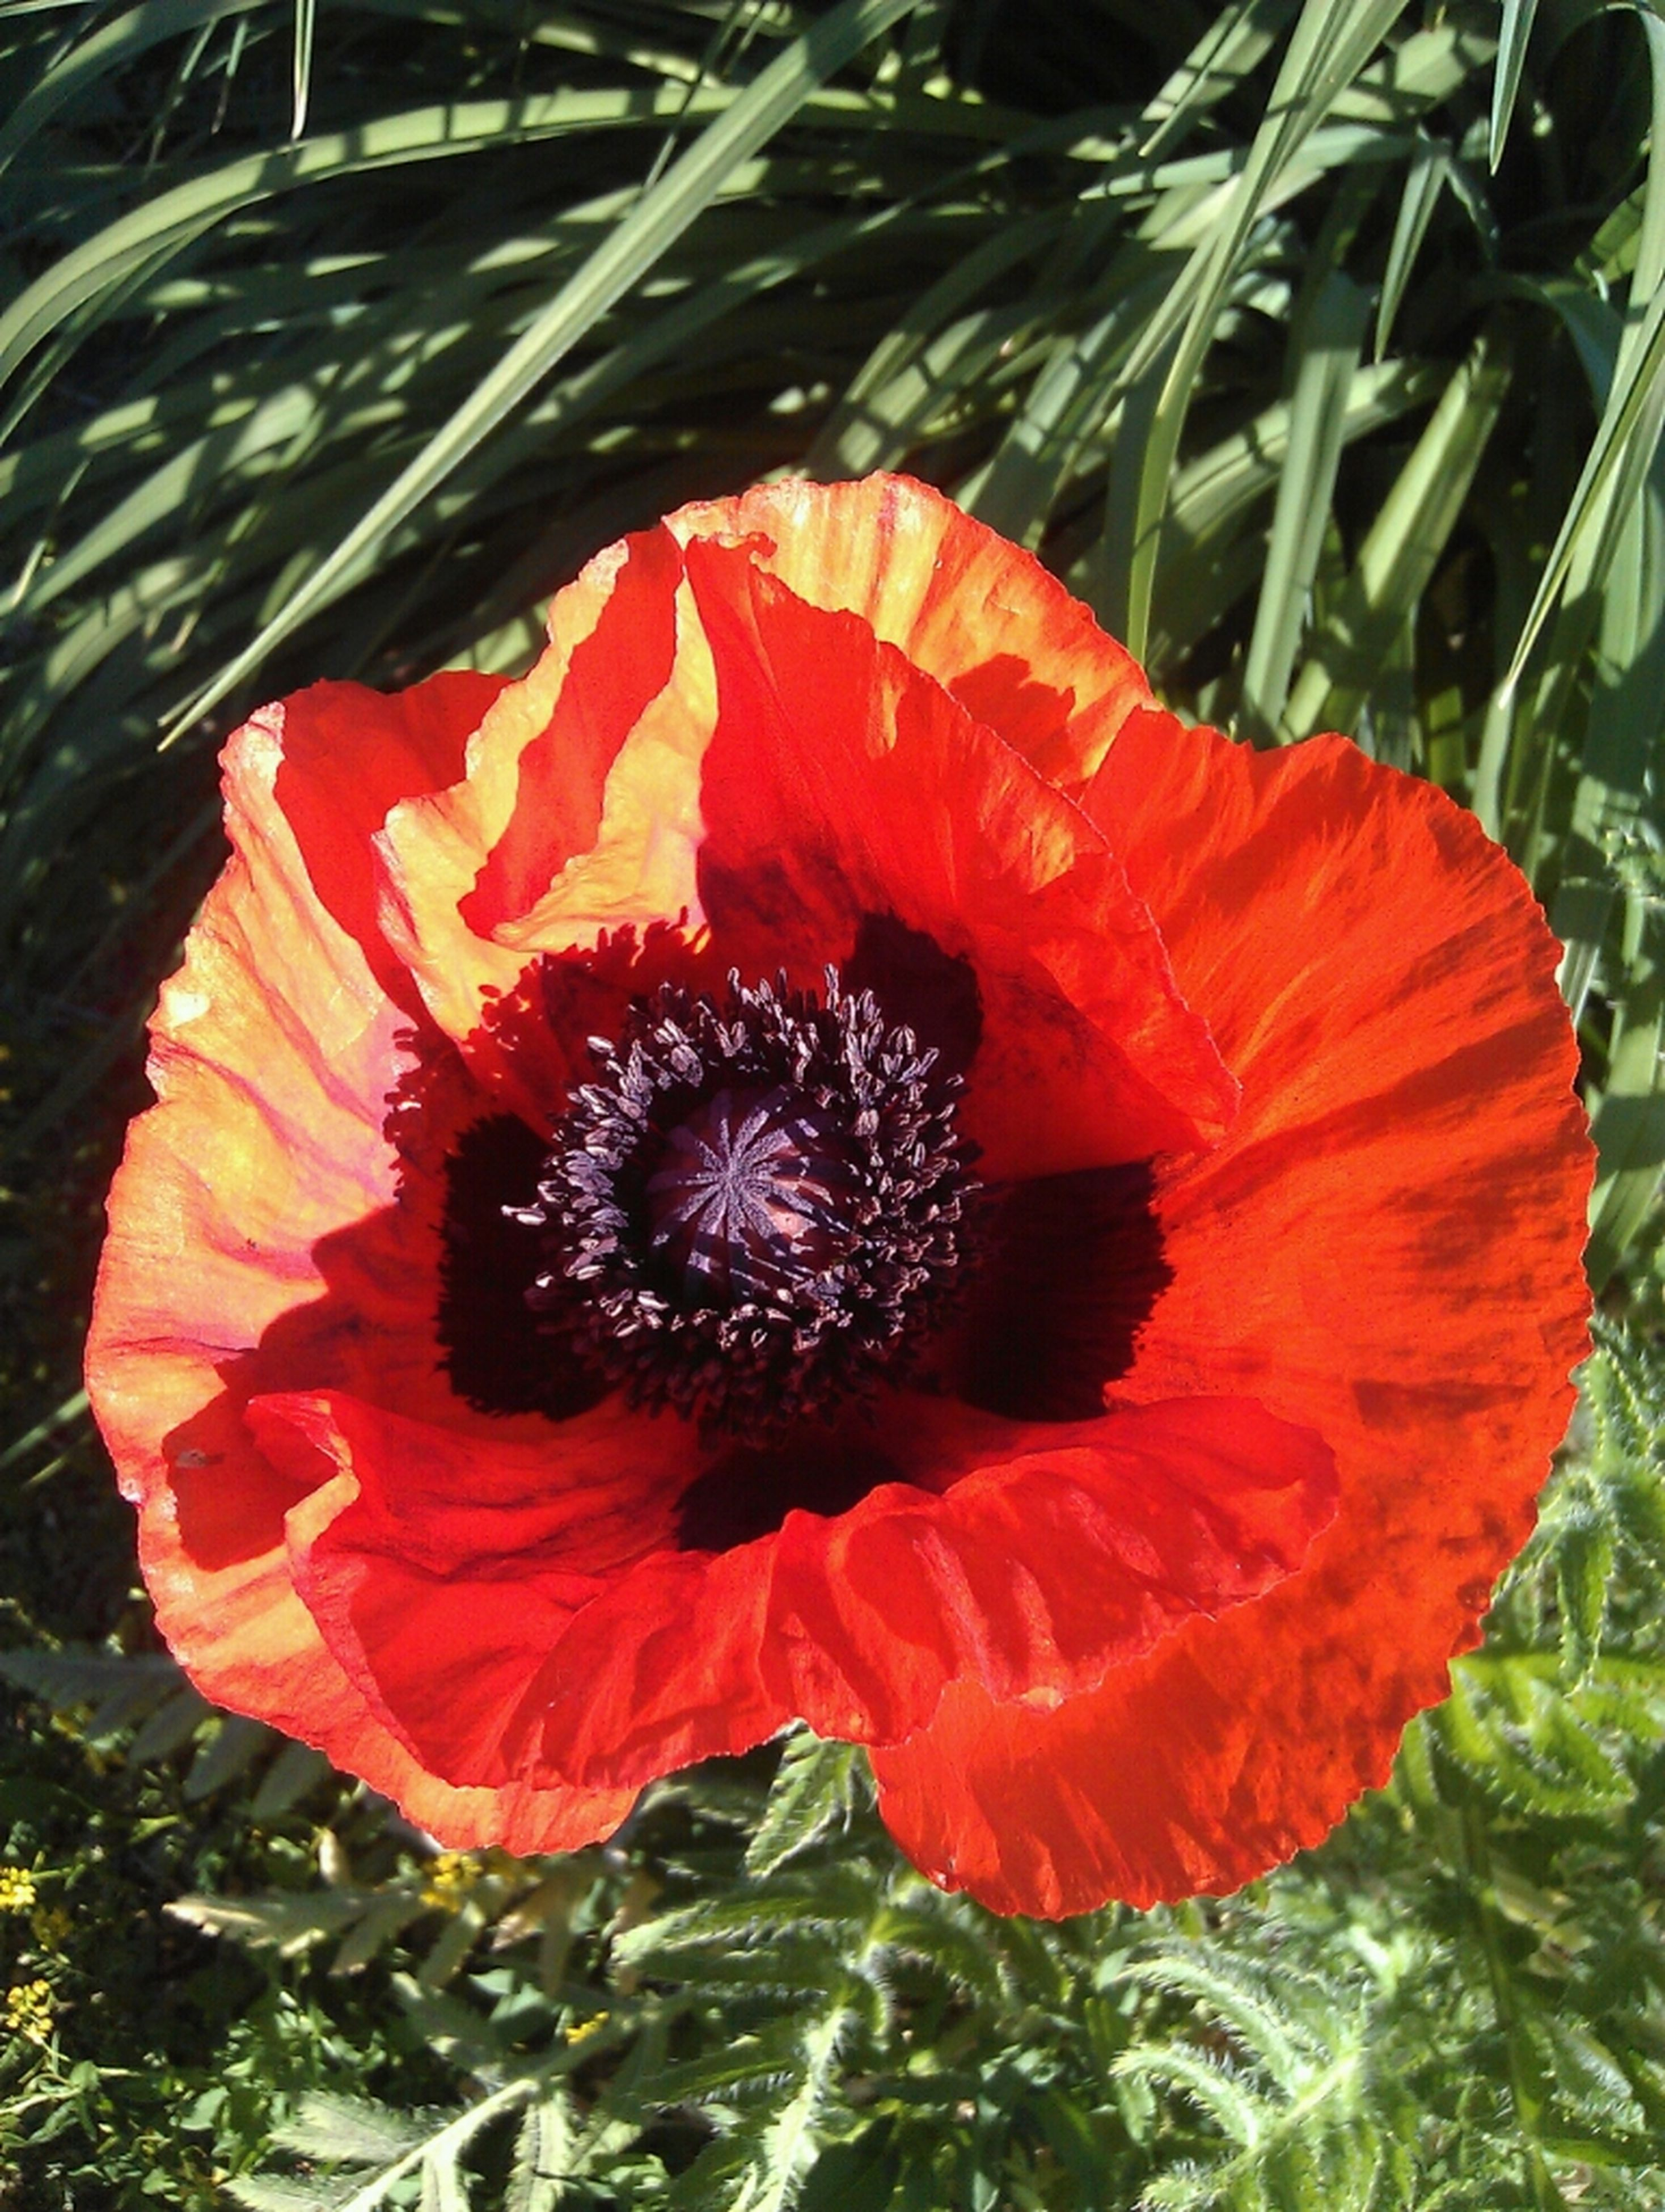 flower, flower head, freshness, petal, red, fragility, growth, single flower, beauty in nature, pollen, blooming, plant, nature, close-up, high angle view, poppy, orange color, hibiscus, stamen, outdoors